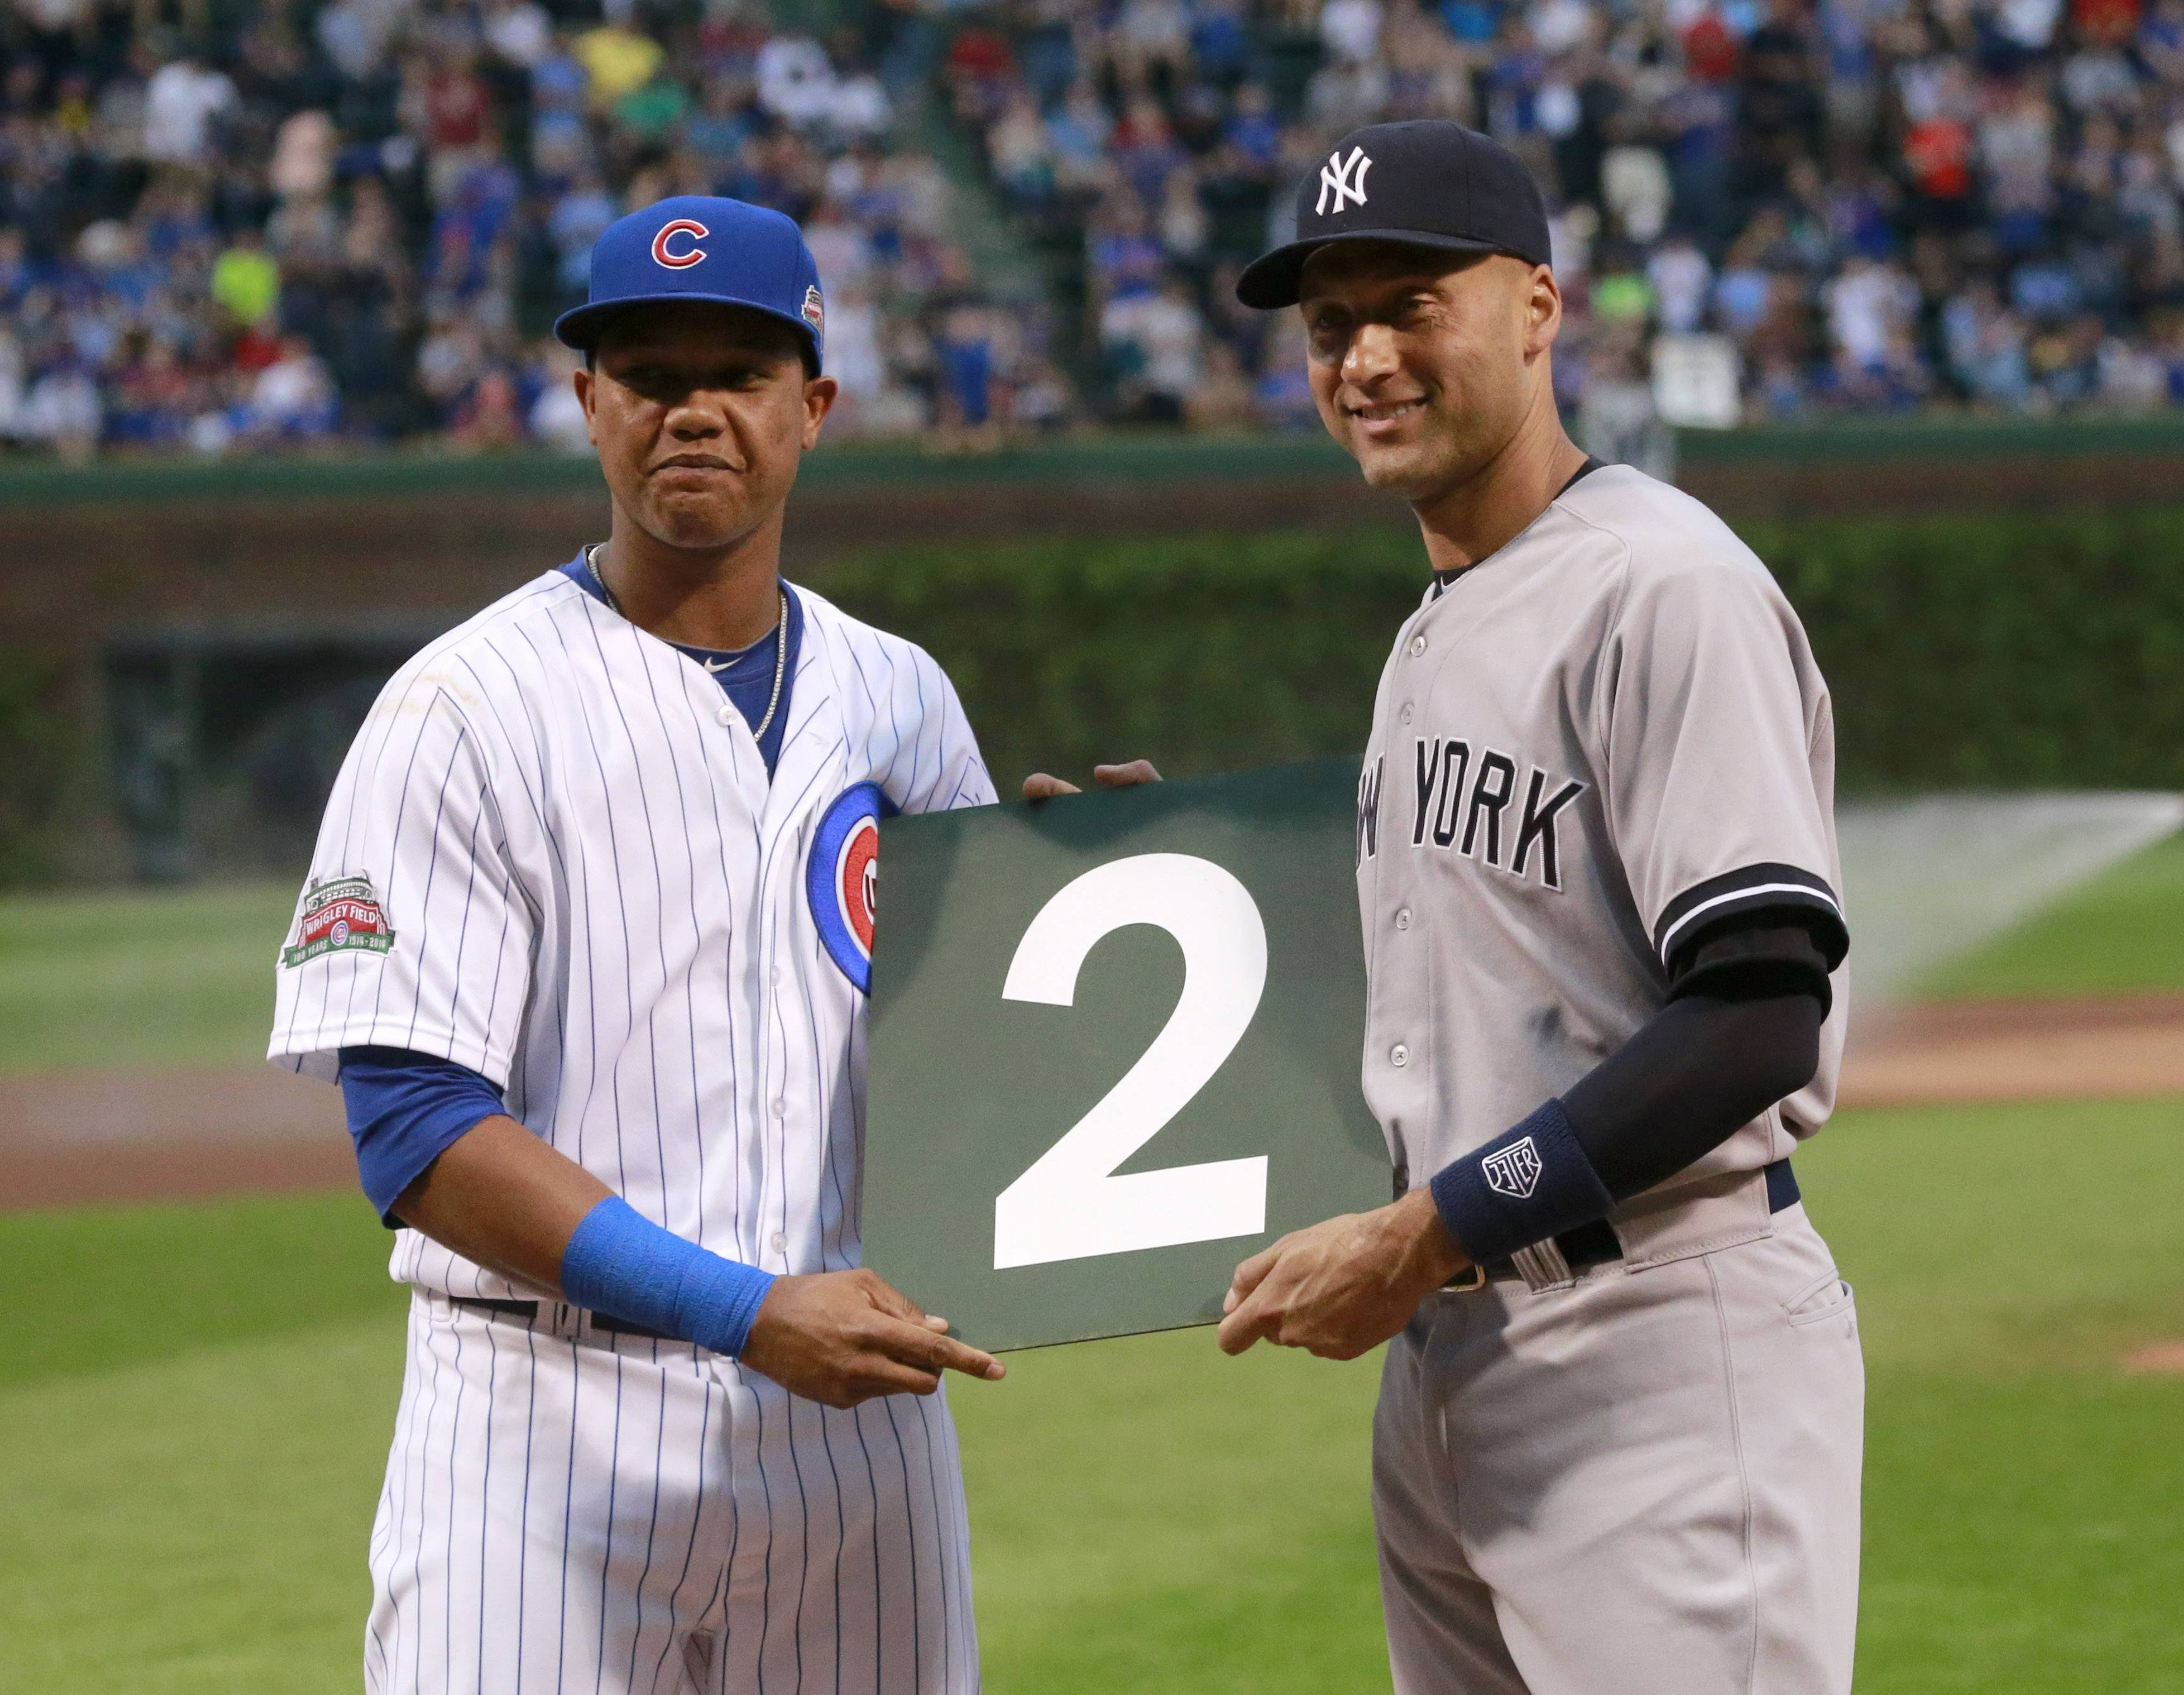 The Cubs' Starlin Castro, left, presents the Yankees' Derek Jeter with his uniform number from the Wrigley Field scoreboard Tuesday.